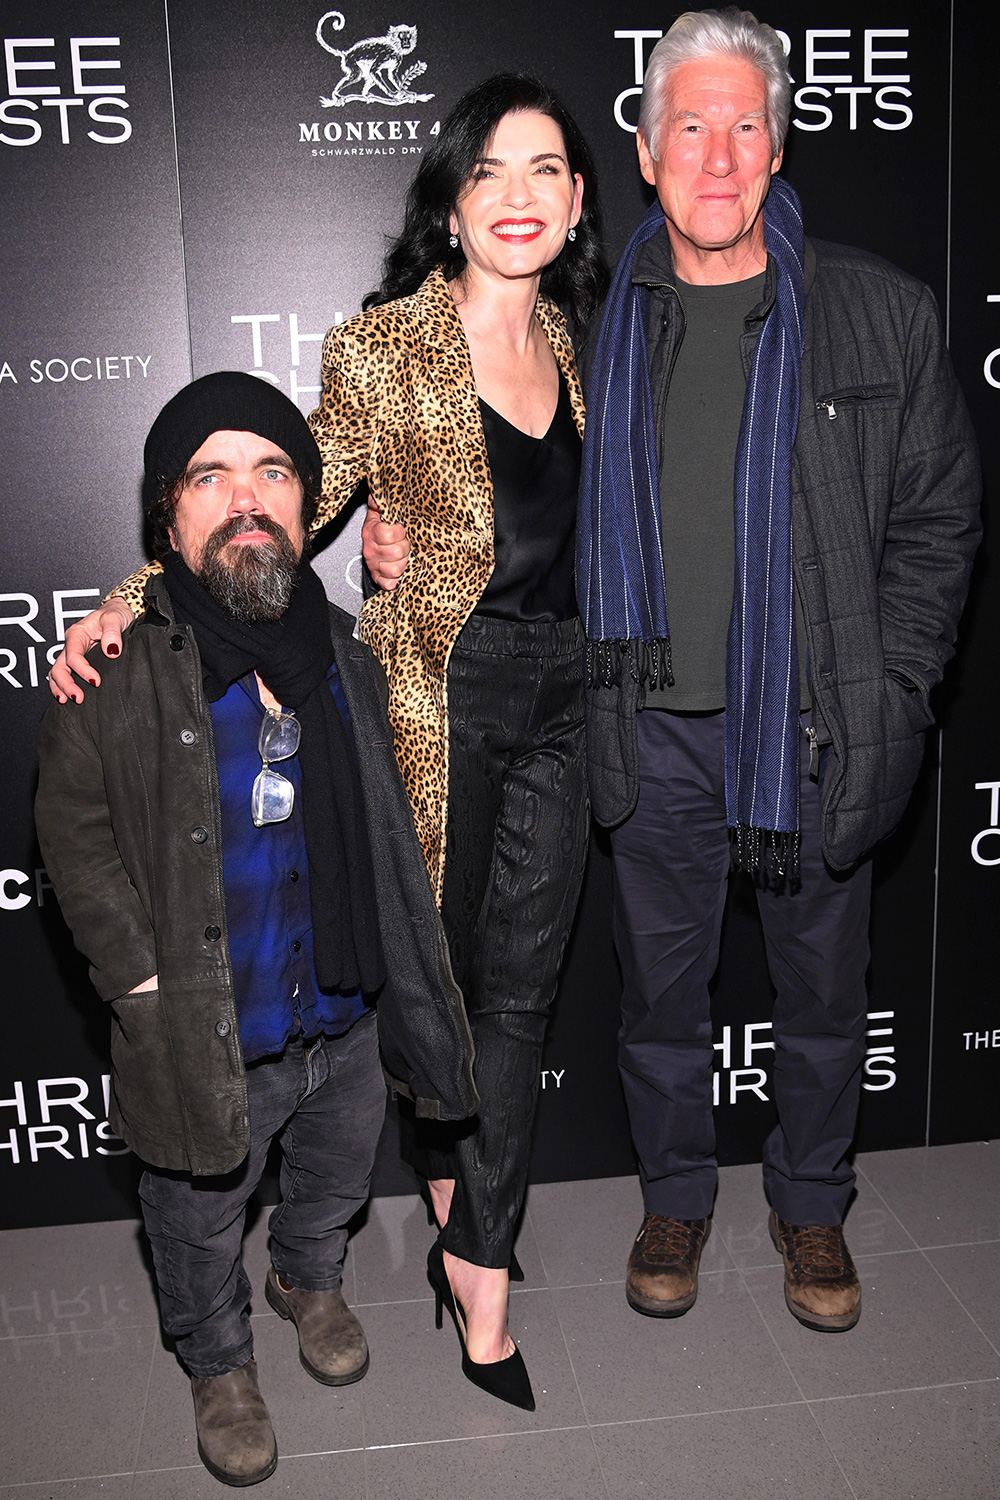 """Peter Dinklage, Julianna Margulies and Richard Gere attend a screening of """"Three Christs"""" hosted by IFC and the Cinema Society at Regal Essex Crossing on January 09, 2020 in New York City"""